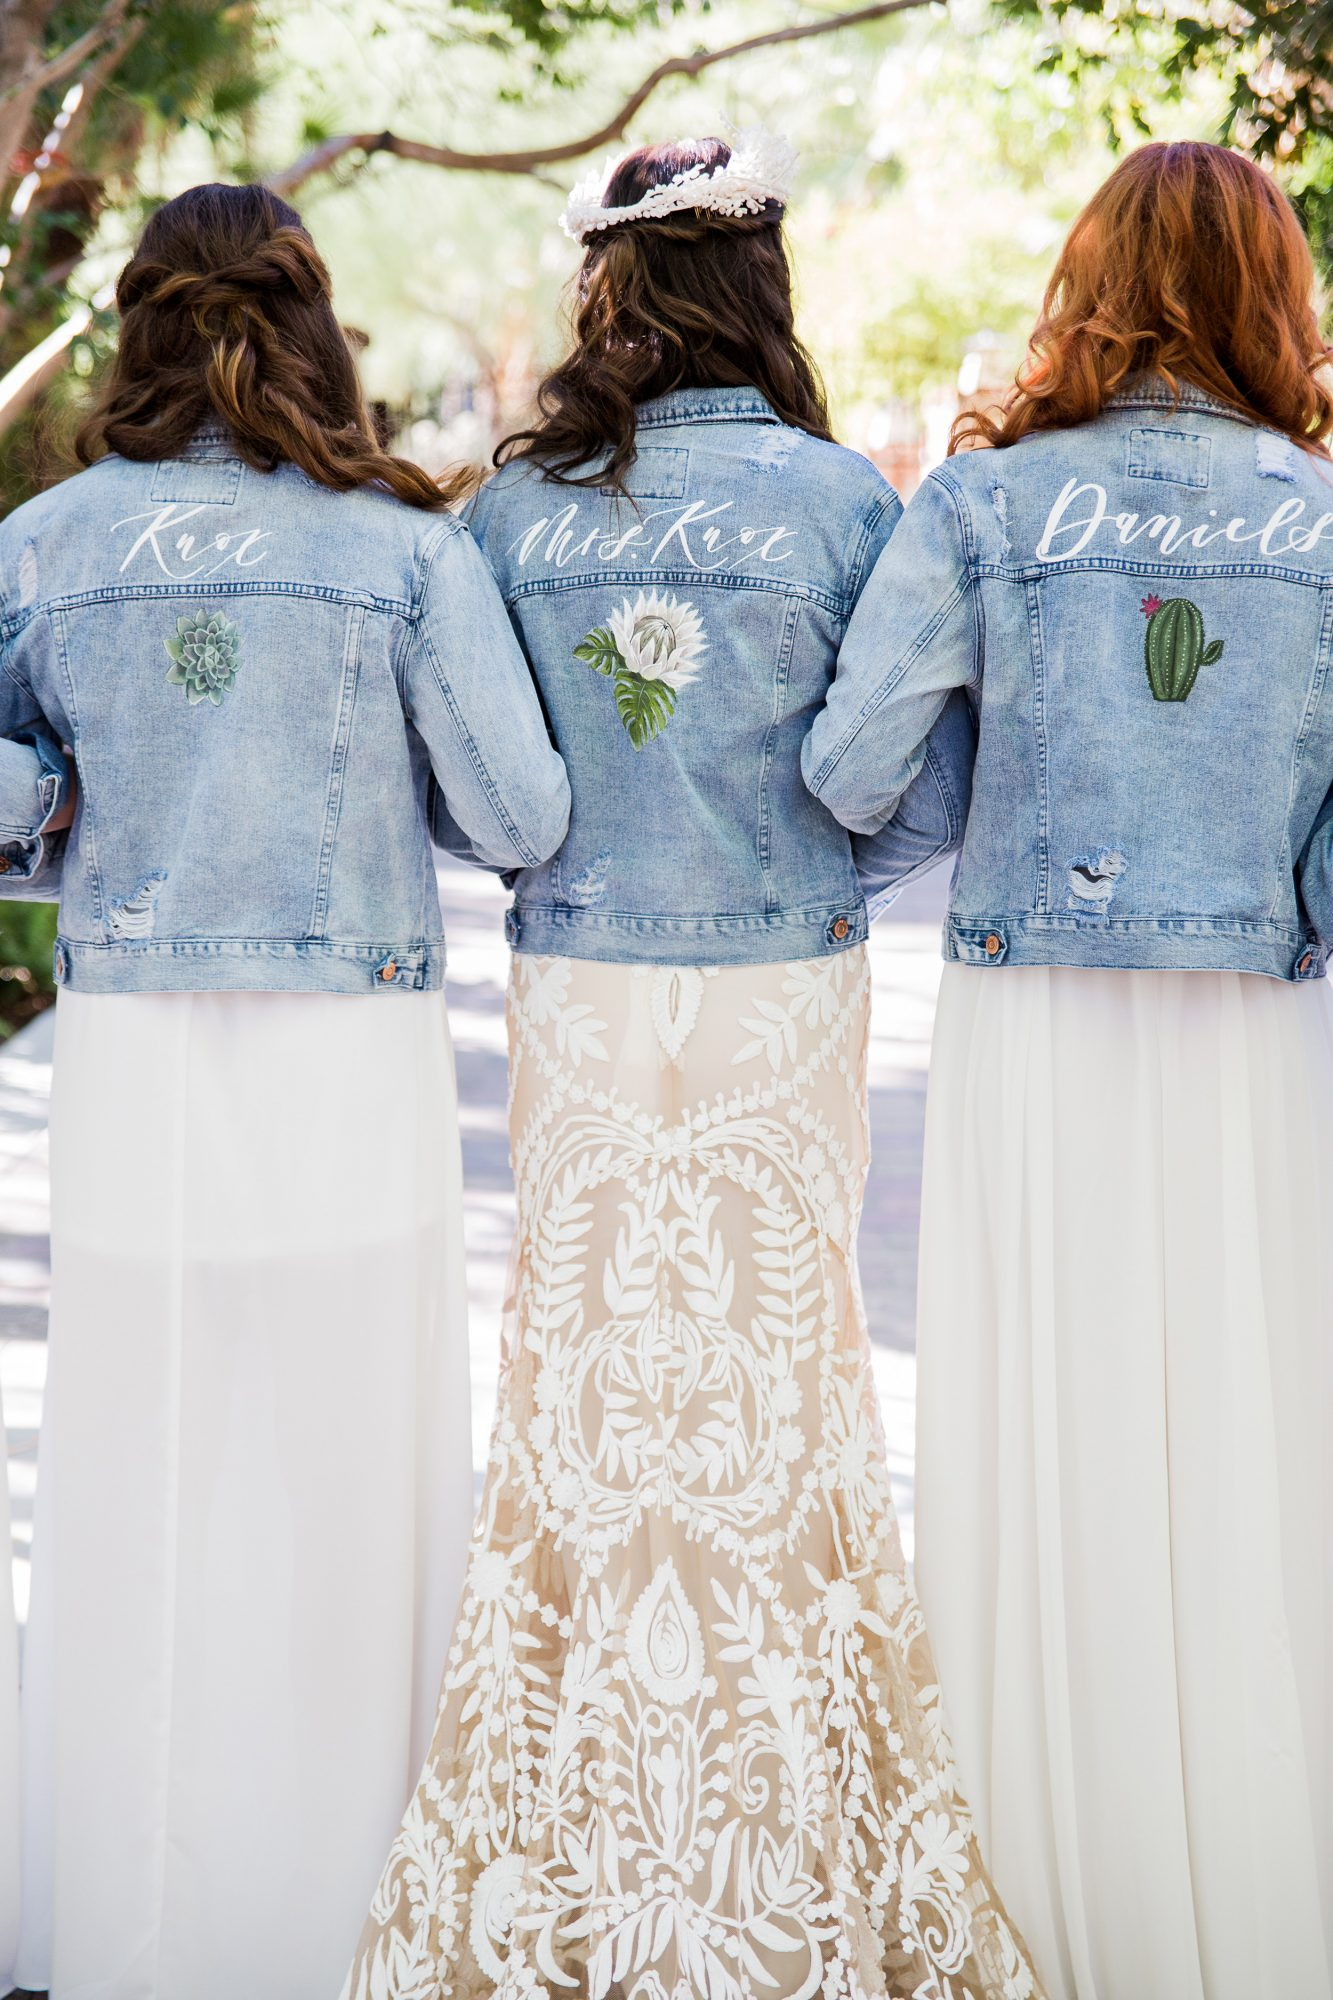 denim jackets with embroidery